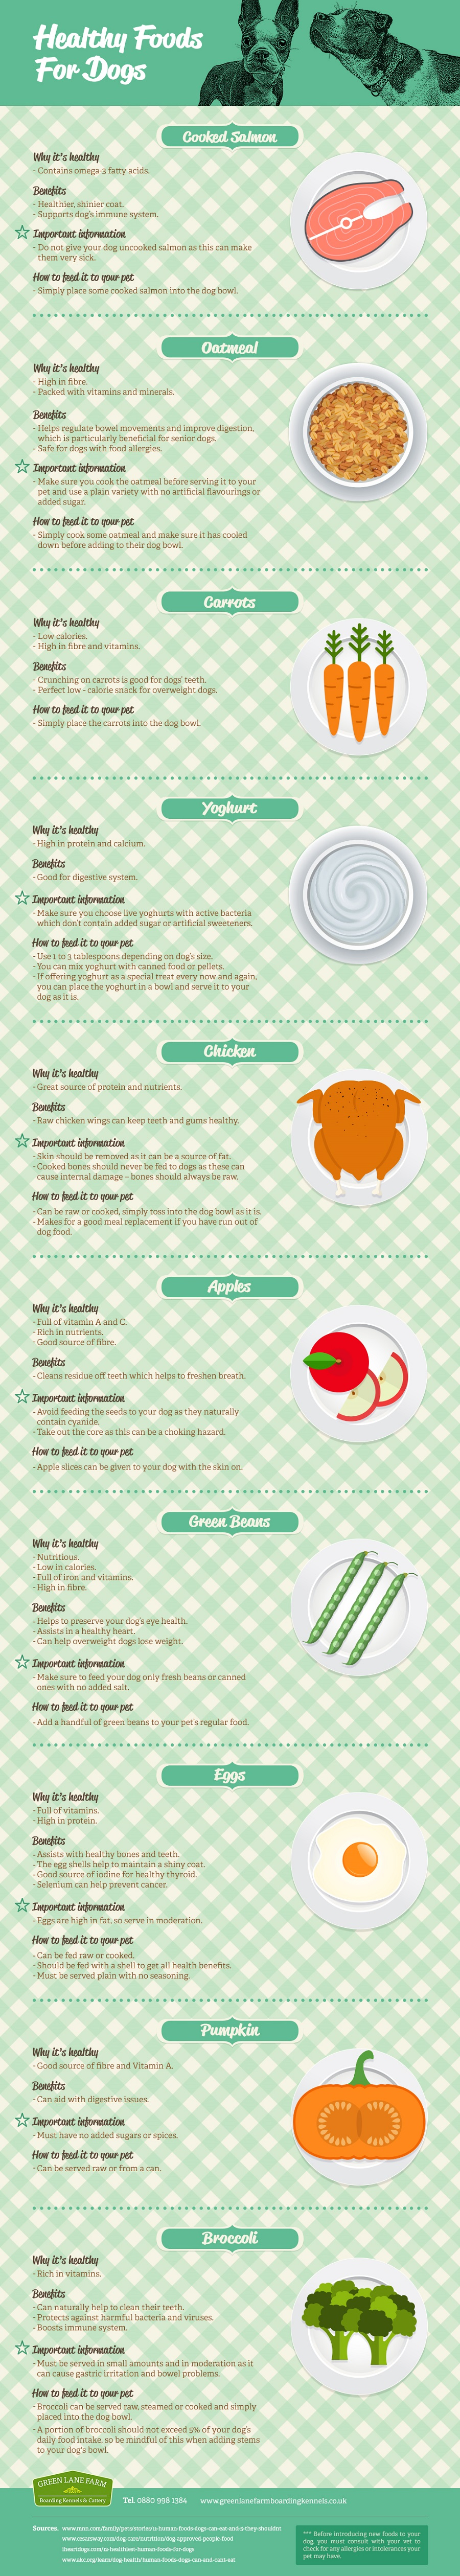 healthy and tasty treats for dogs